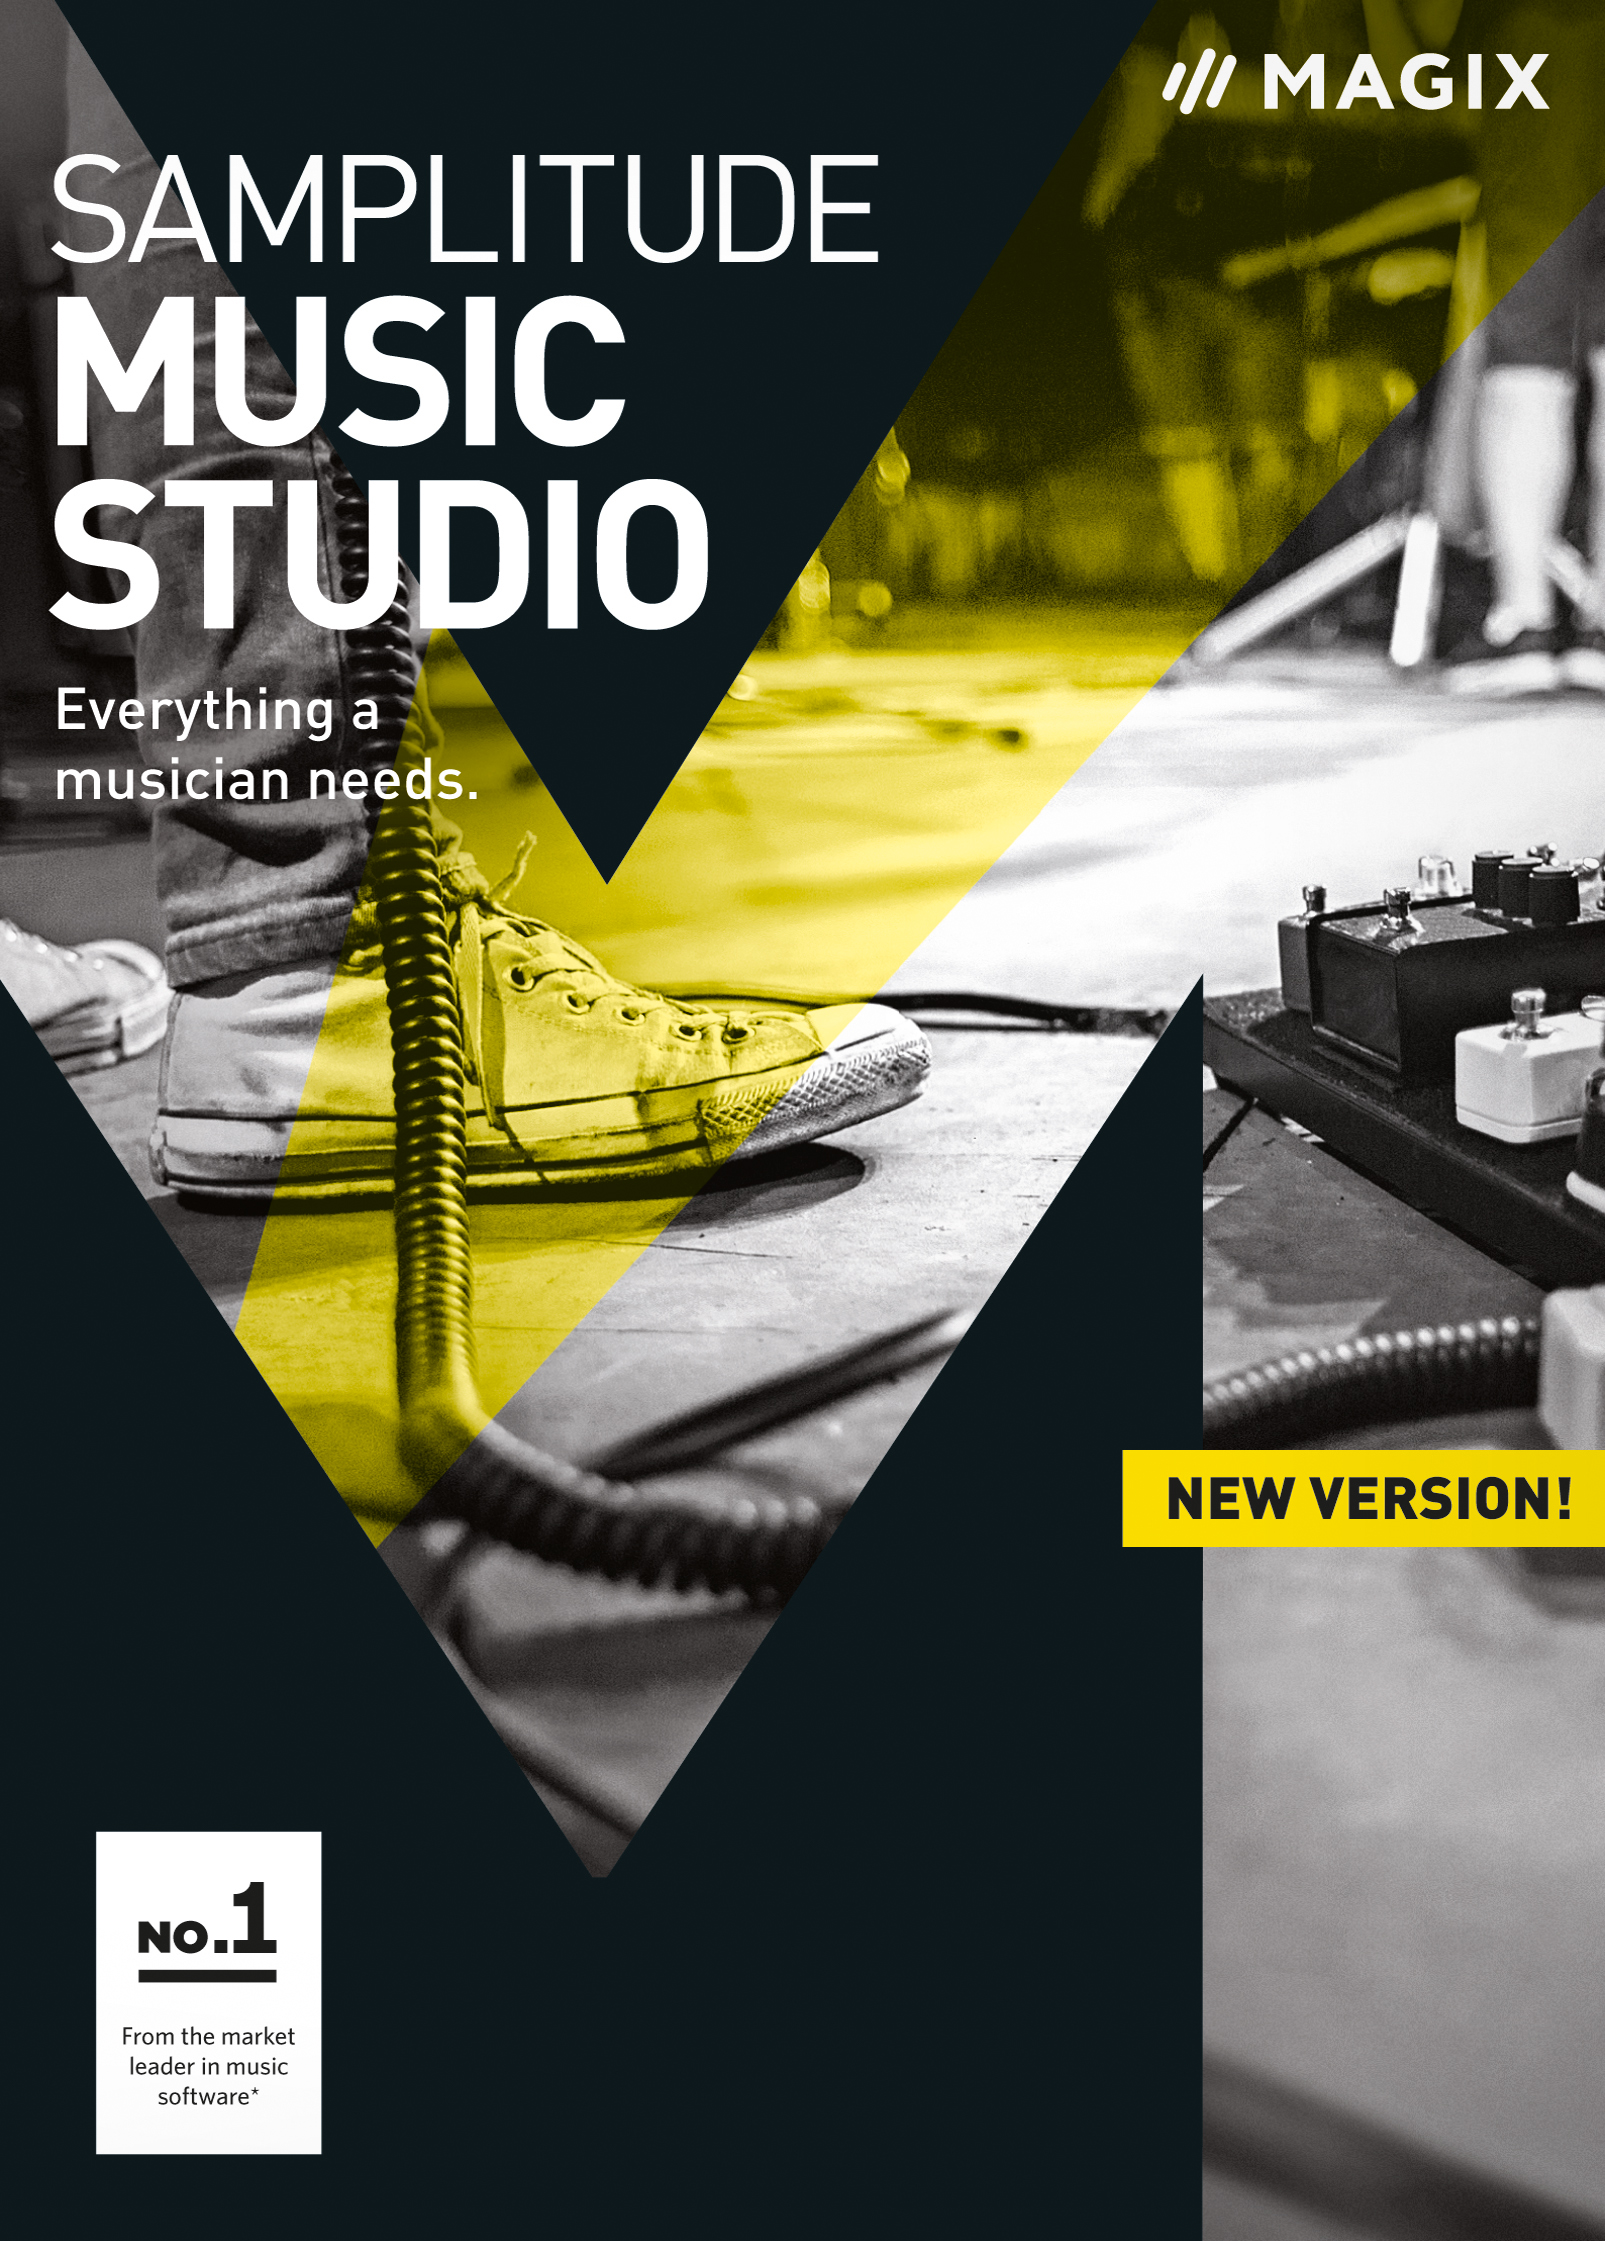 magix-samplitude-music-studio-telechargement